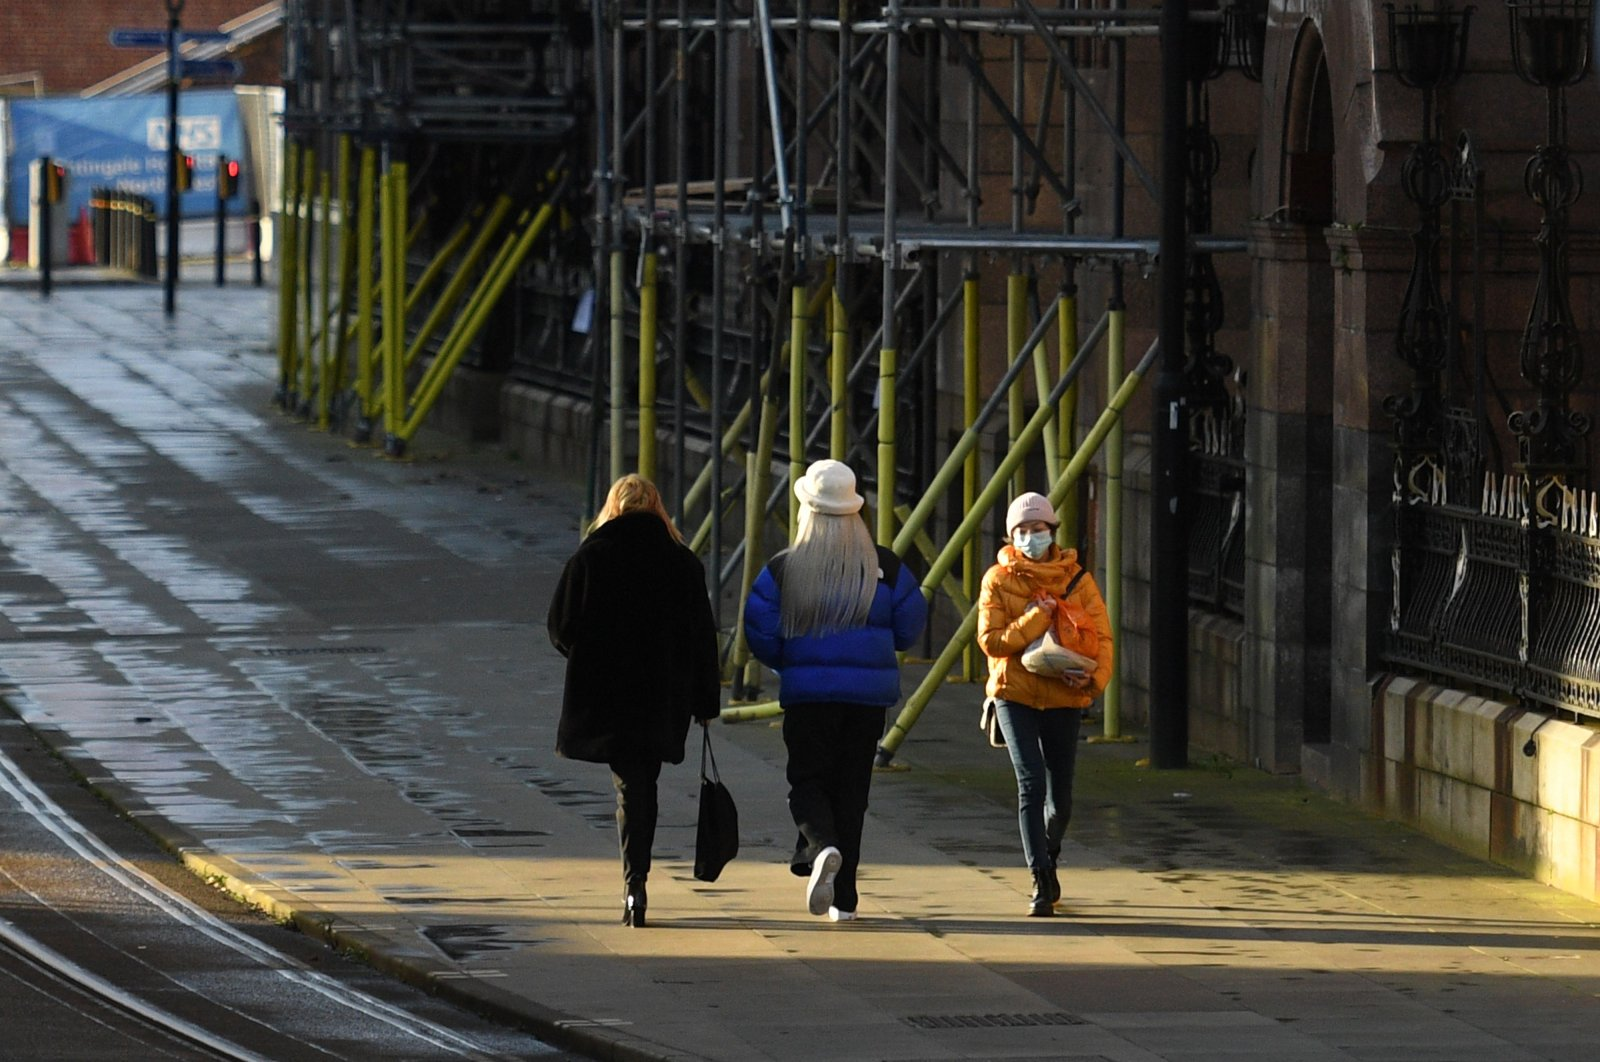 Pedestrians, some wearing masks or face coverings, walk along an almost empty street in Manchester, north west England on Jan. 5, 2021, as Britain enters a second national lockdown to combat the spread of COVID-19. (AFP Photo)